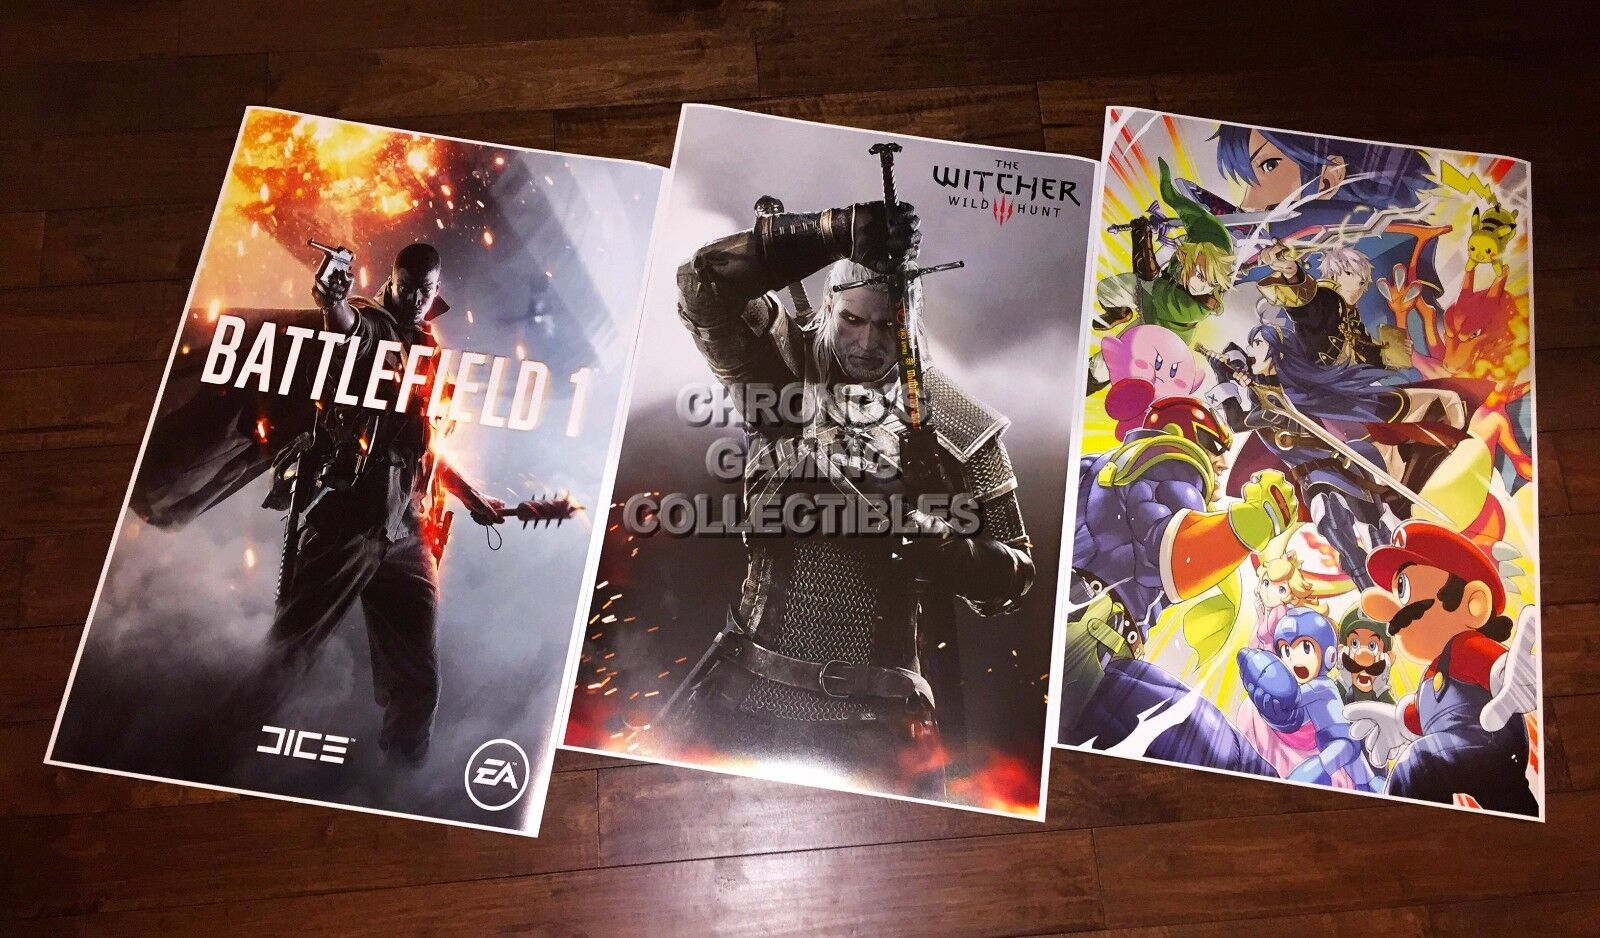 Marvel Spider-Man POSTER PS4 XBOX ONE GLOSSY FINISH RGC Huge Poster NVG261